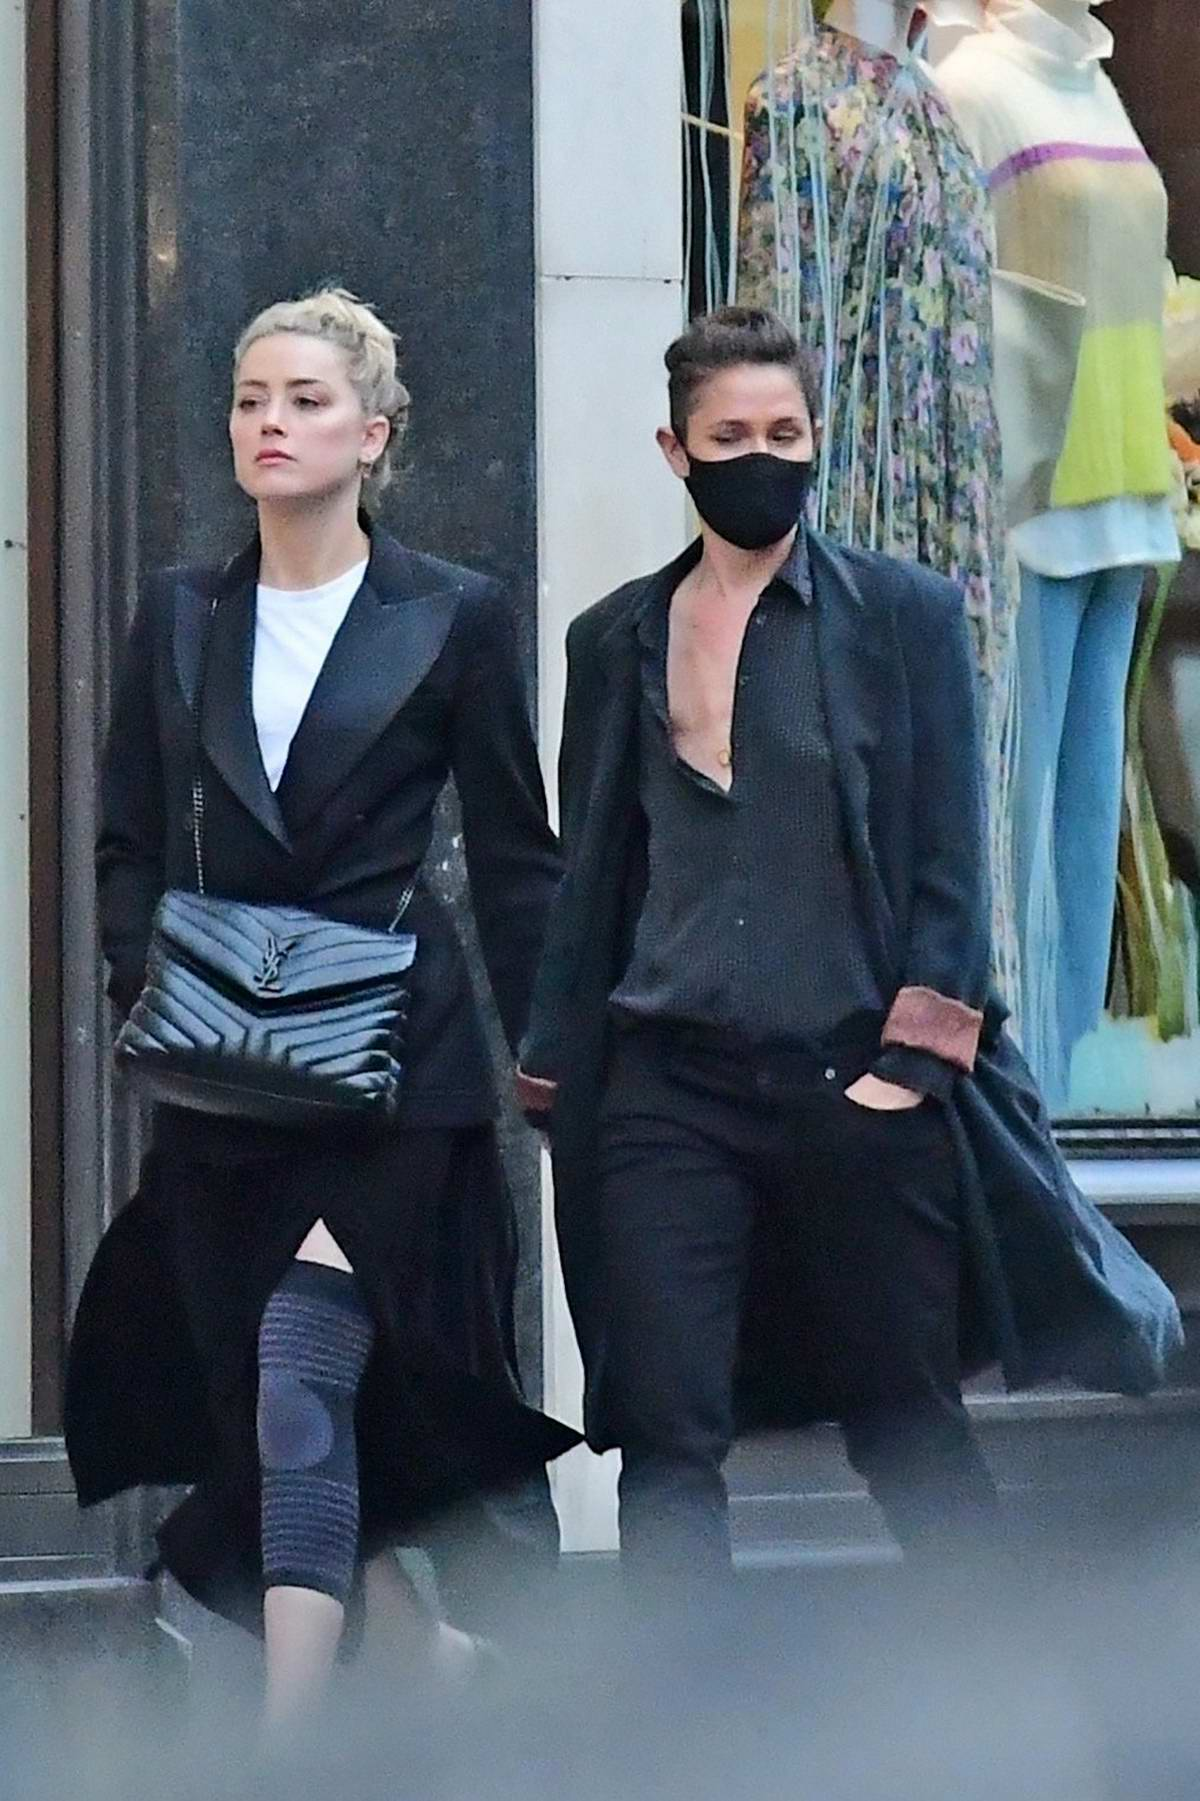 Amber Heard and girlfriend Bianca Butti step out for a stroll through Central London, UK